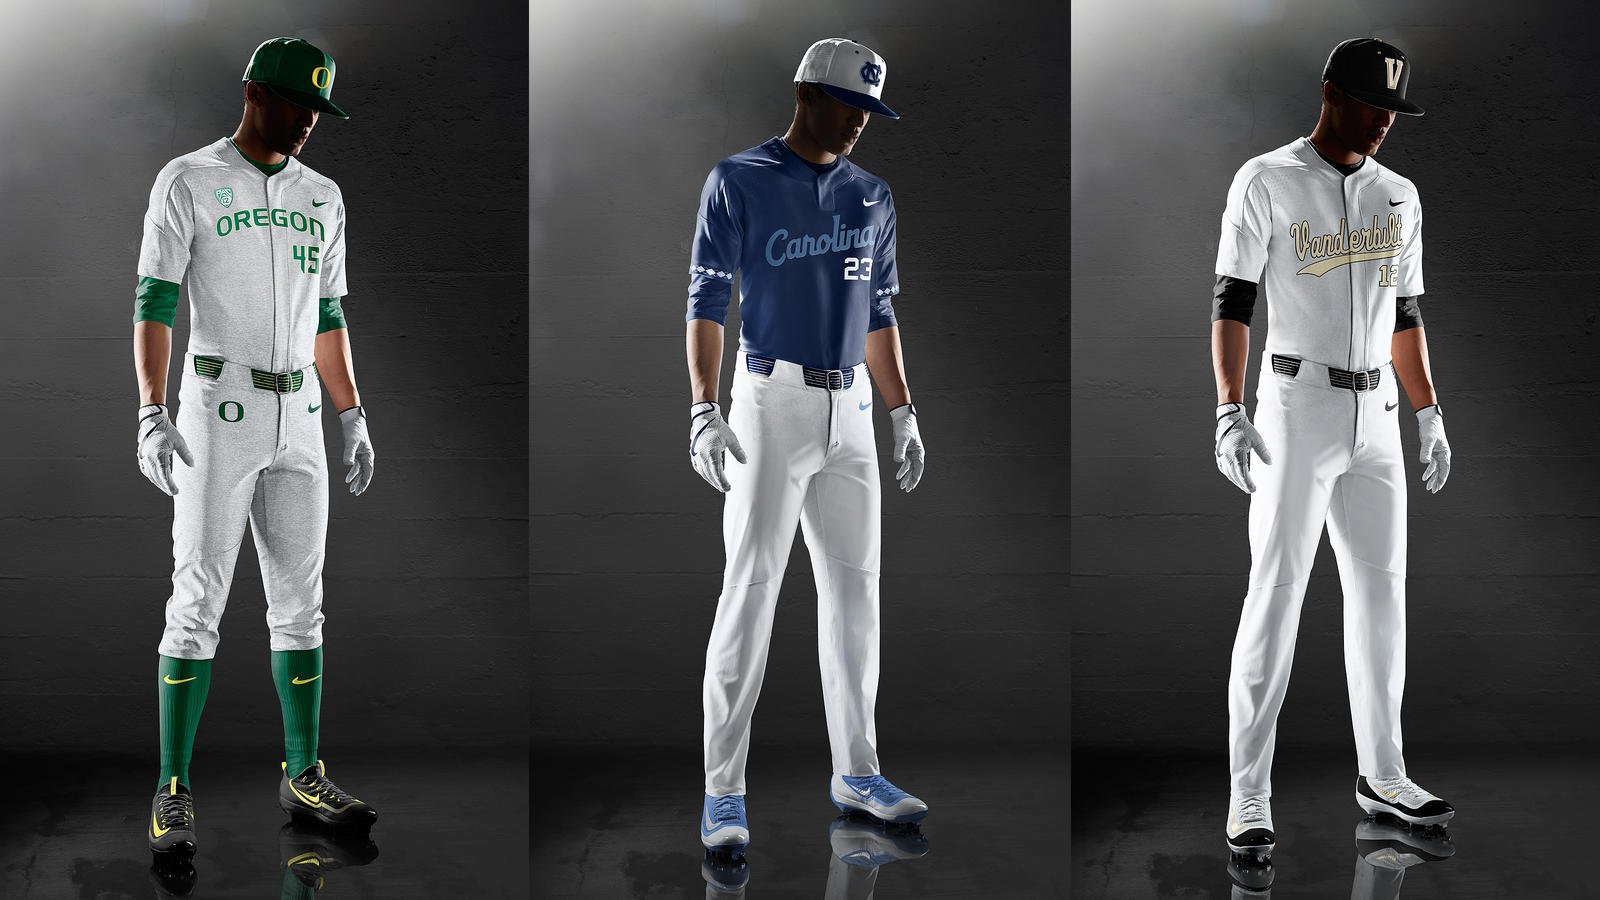 nike vapor elite baseball uniforms